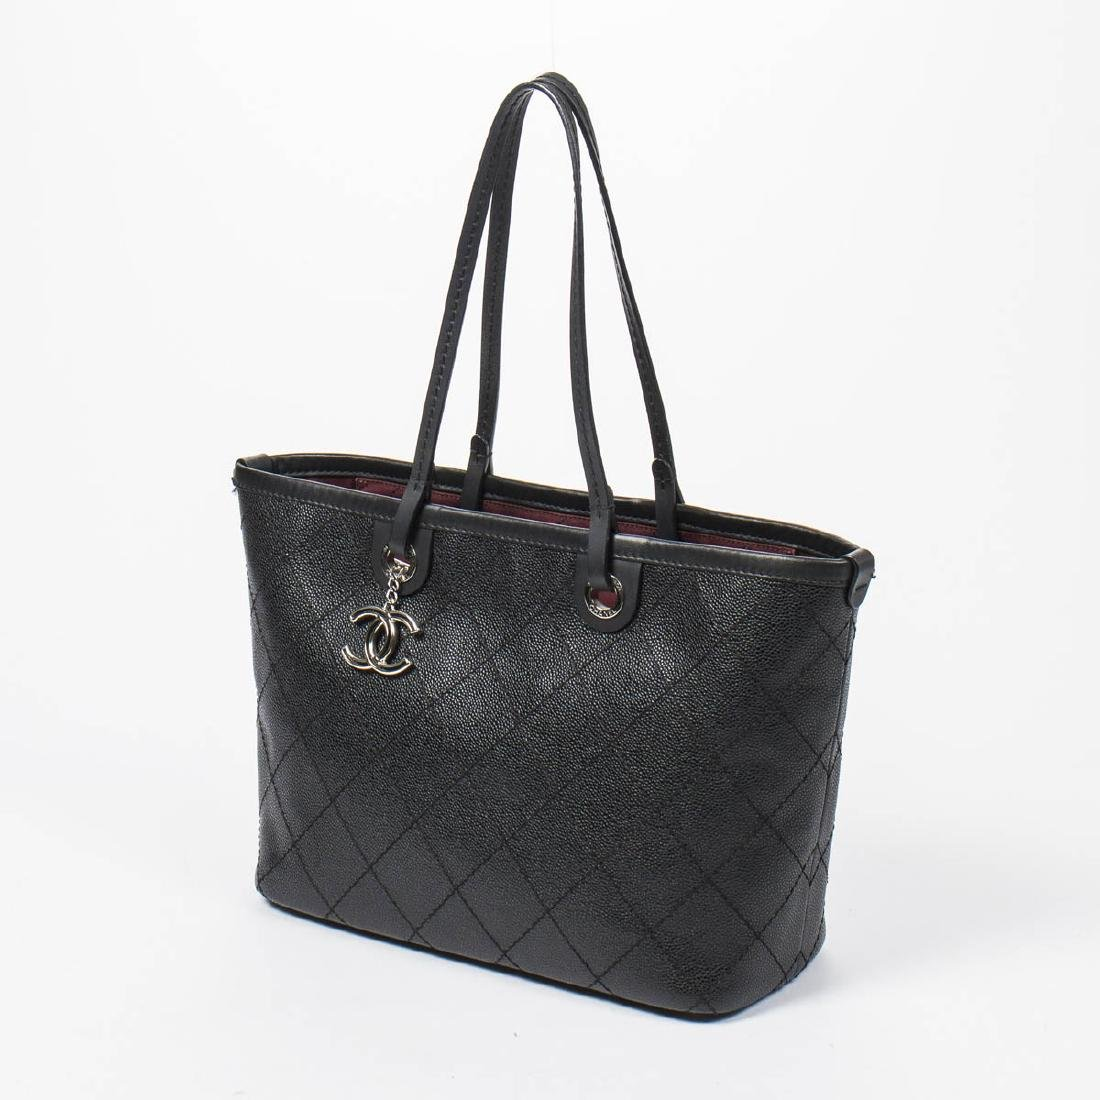 Chanel Shopping Tote MM in Black Quilted Caviar Leather - 2